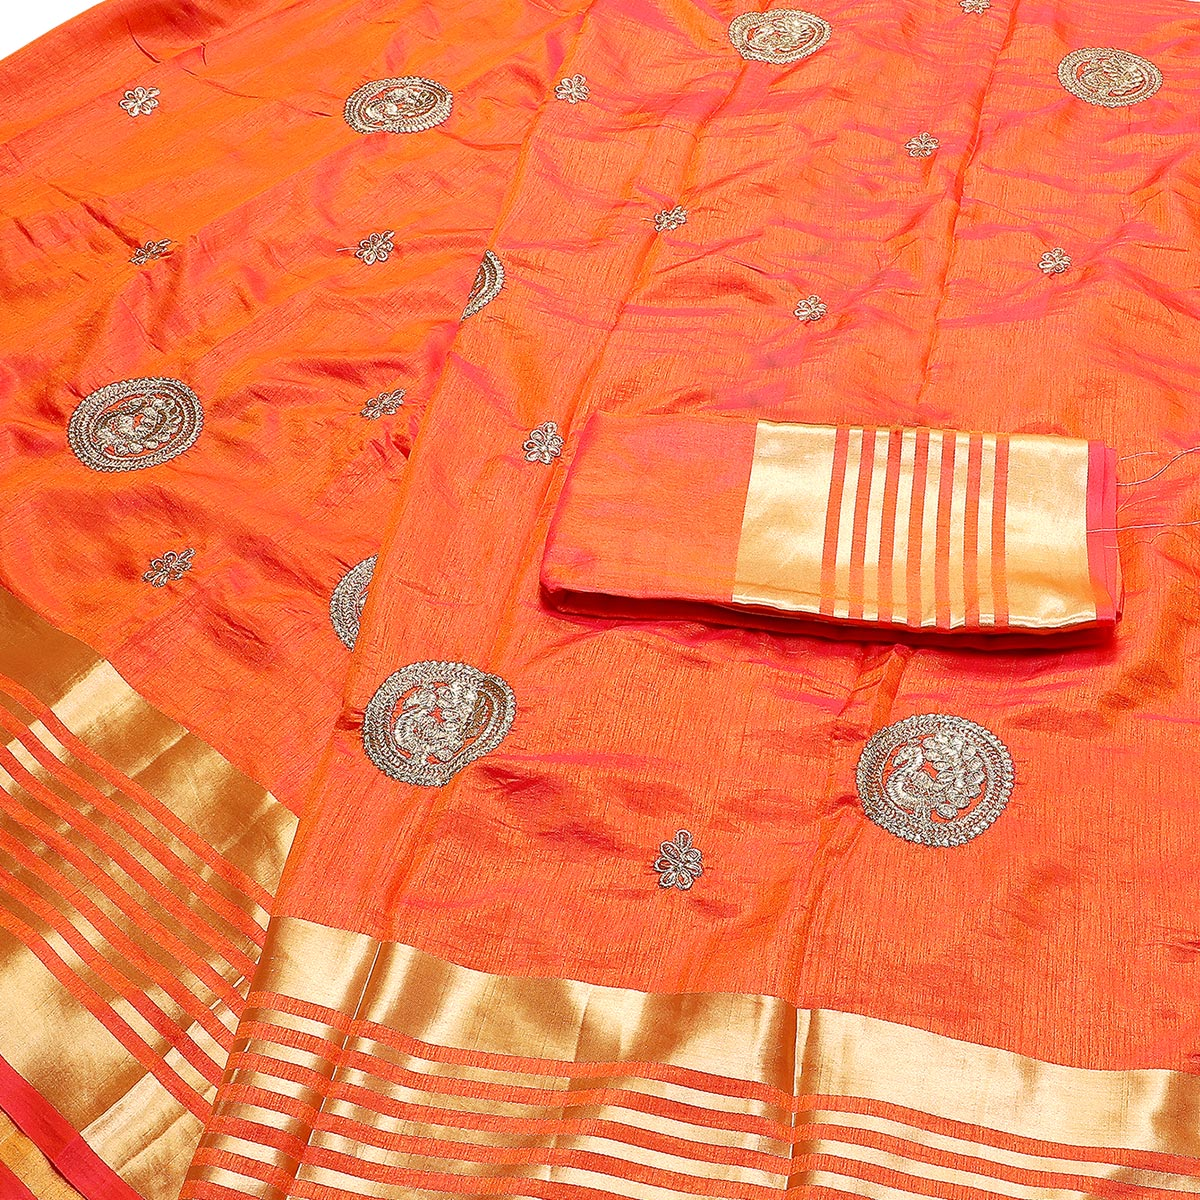 Groovy Orange Colored Festive Wear Peacock Embroidered Banarasi Silk Saree With Tassels